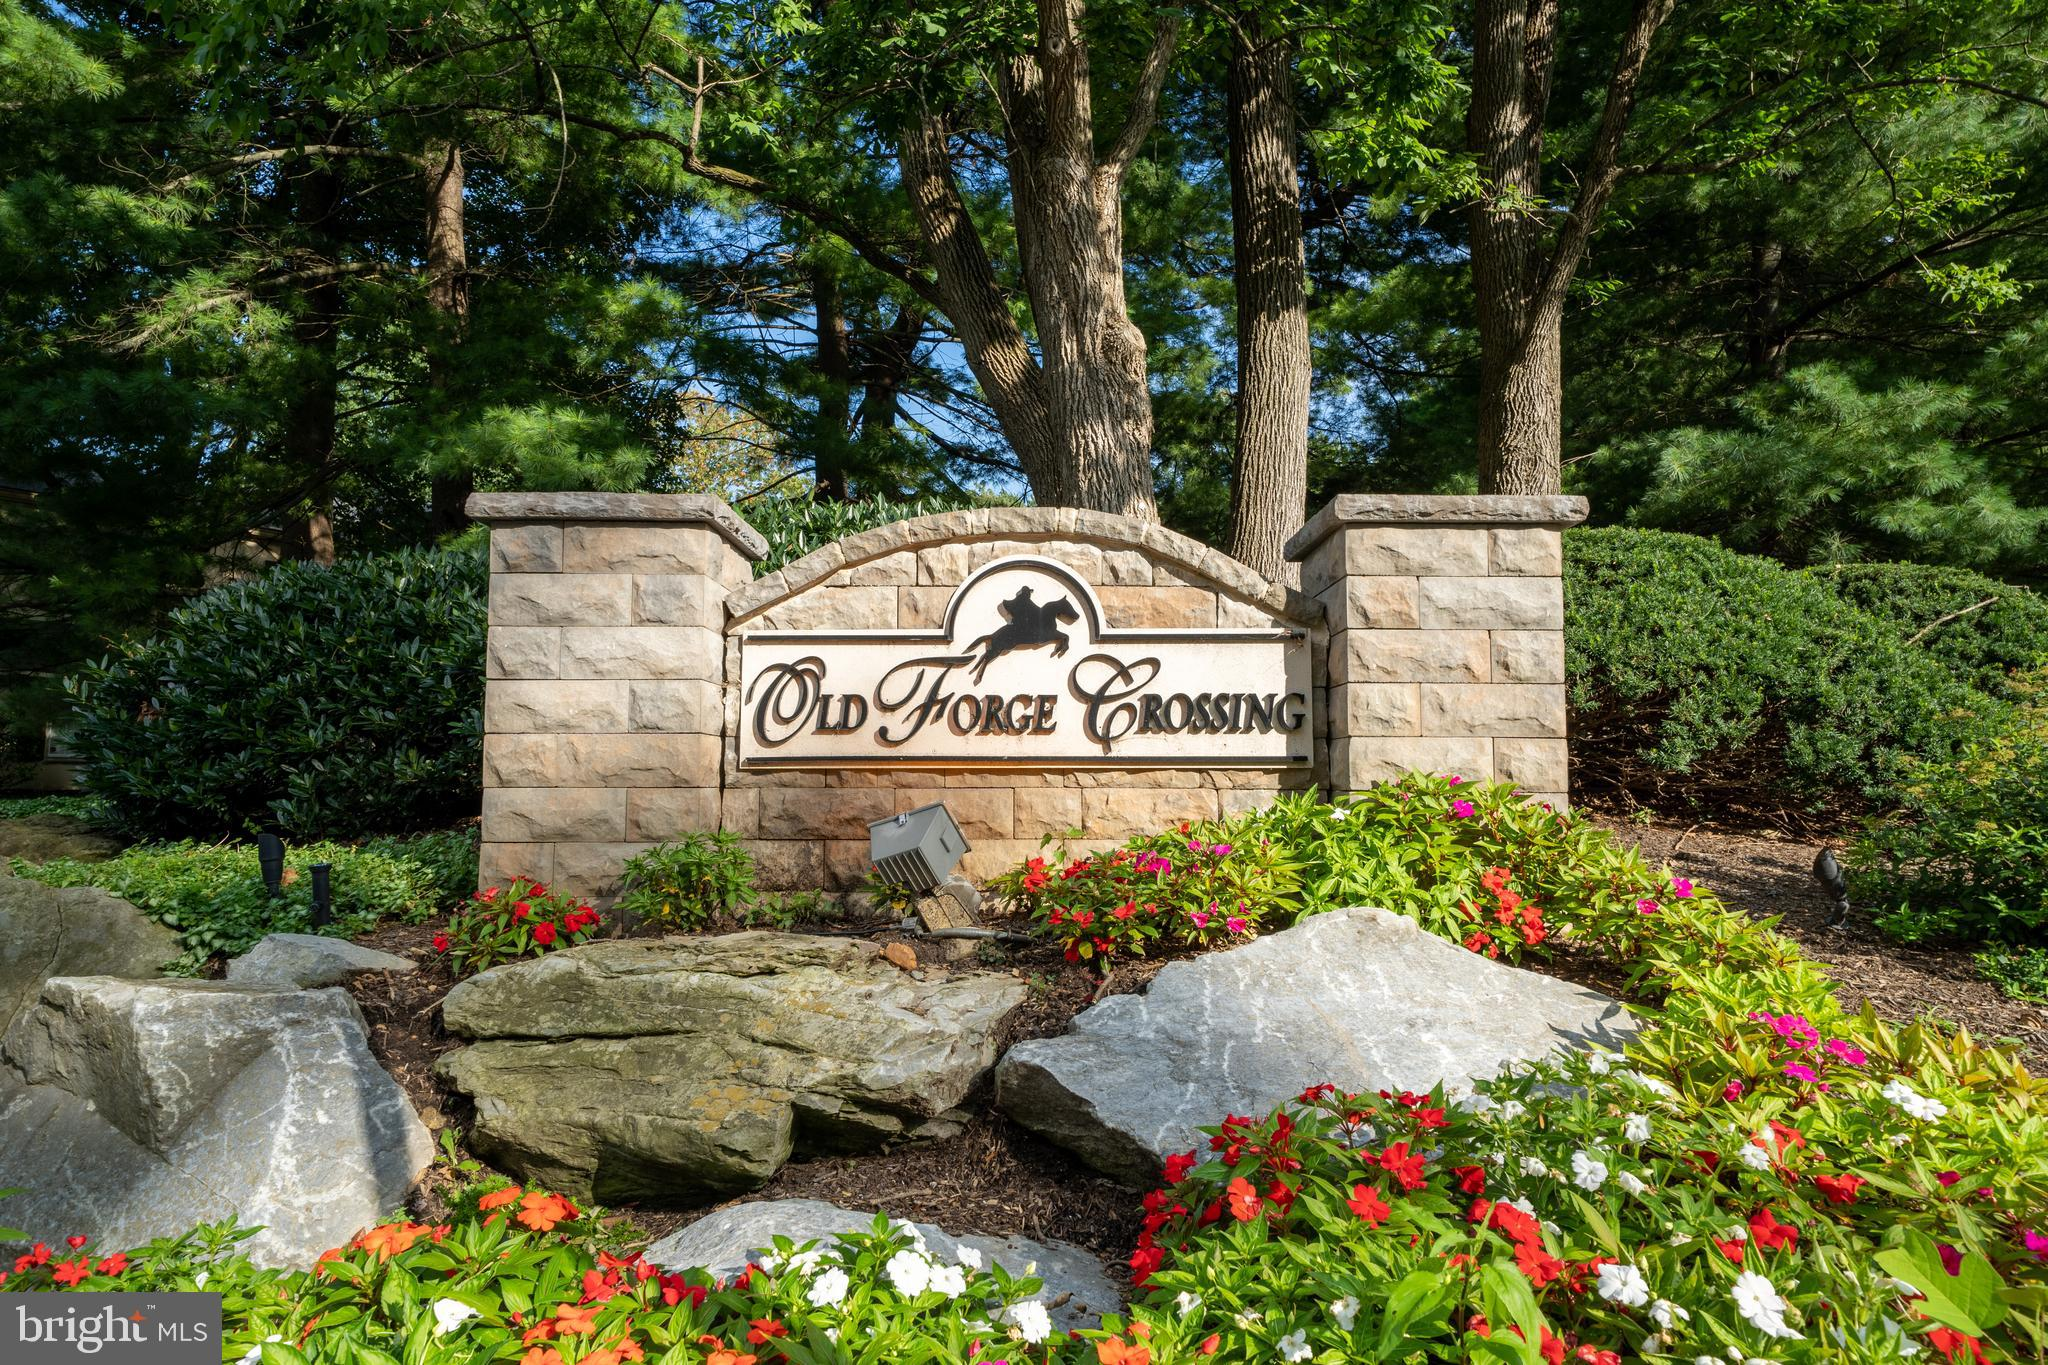 Don't miss this opportunity to move into a beautifully updated first floor condo in popular Old Forge Crossing. Living room, dining room, and kitchen are open providing a wonderful flow to this living space. Enjoy the wood burning fireplace. The bathroom has also been tastefully renovated with new vanity, lighting and fixtures. Large main bedroom with 2 generous closets. In unit washer dryer. There is plenty of closet space including a large walk-in closet. Painted with neutral color, new luxury vinyl tile and Newer windows throughout. New HVAC installed in 2020. The unit is located on a dead-end street which provides less traffic and plenty of parking. This beautifully landscaped community features a reflection pond, walking paths and social activities for everyone. Old Forge Crossing is on 40 acres with walking trails, swimming pool and three tennis courts. Like to bike or enjoy long walks? OFC has private access to the Chester Valley Trail. Short commute to the Devon train station (R5) and bus routes to the city, 202 the turnpike as well as major corporate centers and shopping especially Trader Joes, Whole Foods, Wegmans and the King of Prussia Mall. Move in today and enjoy! Cats are allowed - no dogs. Make this your home today!